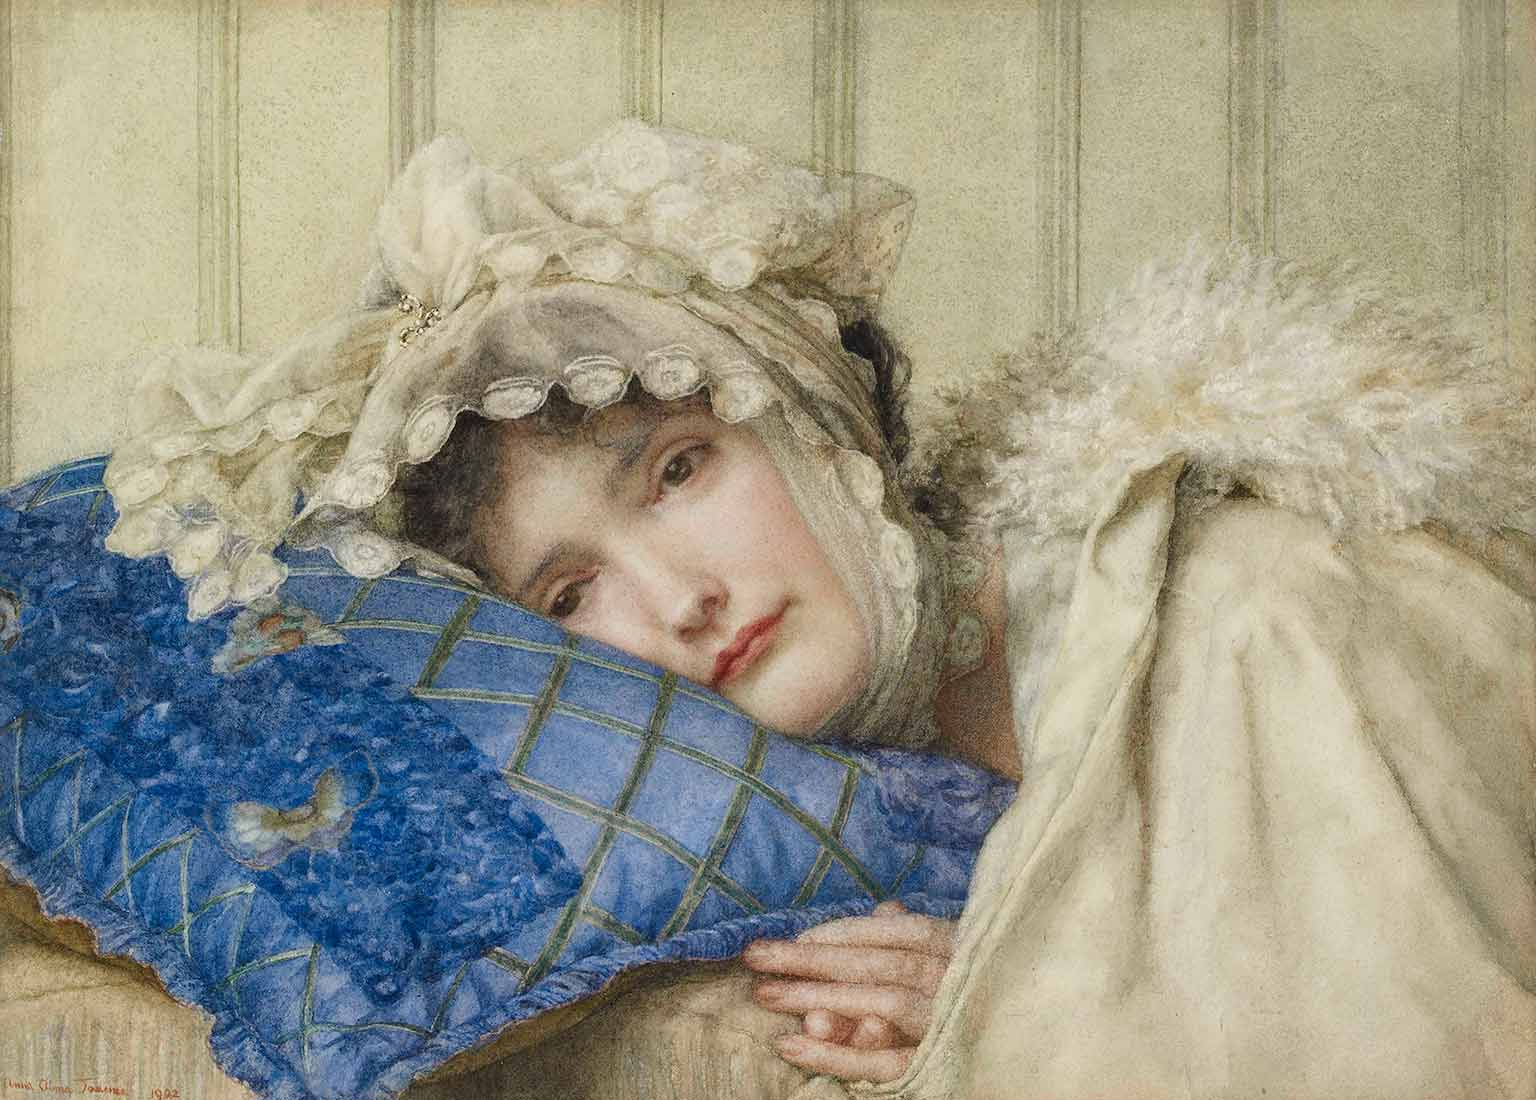 Anna Alma-Tadema, Girl in a Bonnet with her Head on a Blue Pillow, 1902